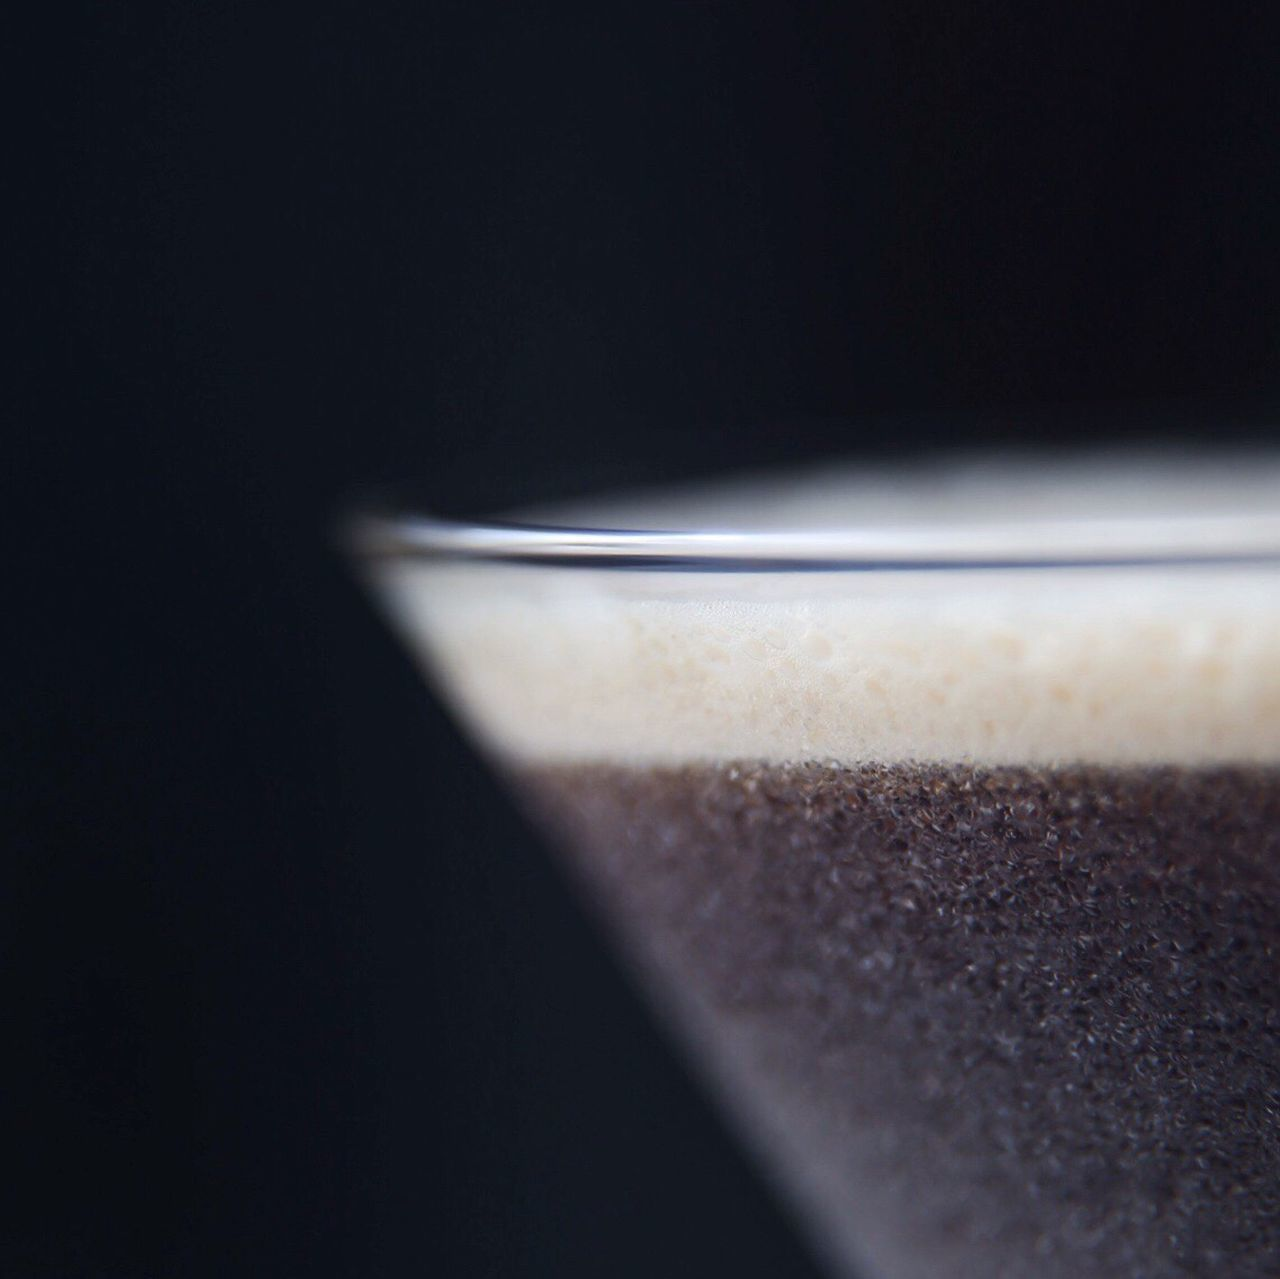 Food And Drink Close-up Indoors  No People Drink Freshness Day Coffee espressomartini Espresso Martini Cocktails Roasted EyeEmNewHere